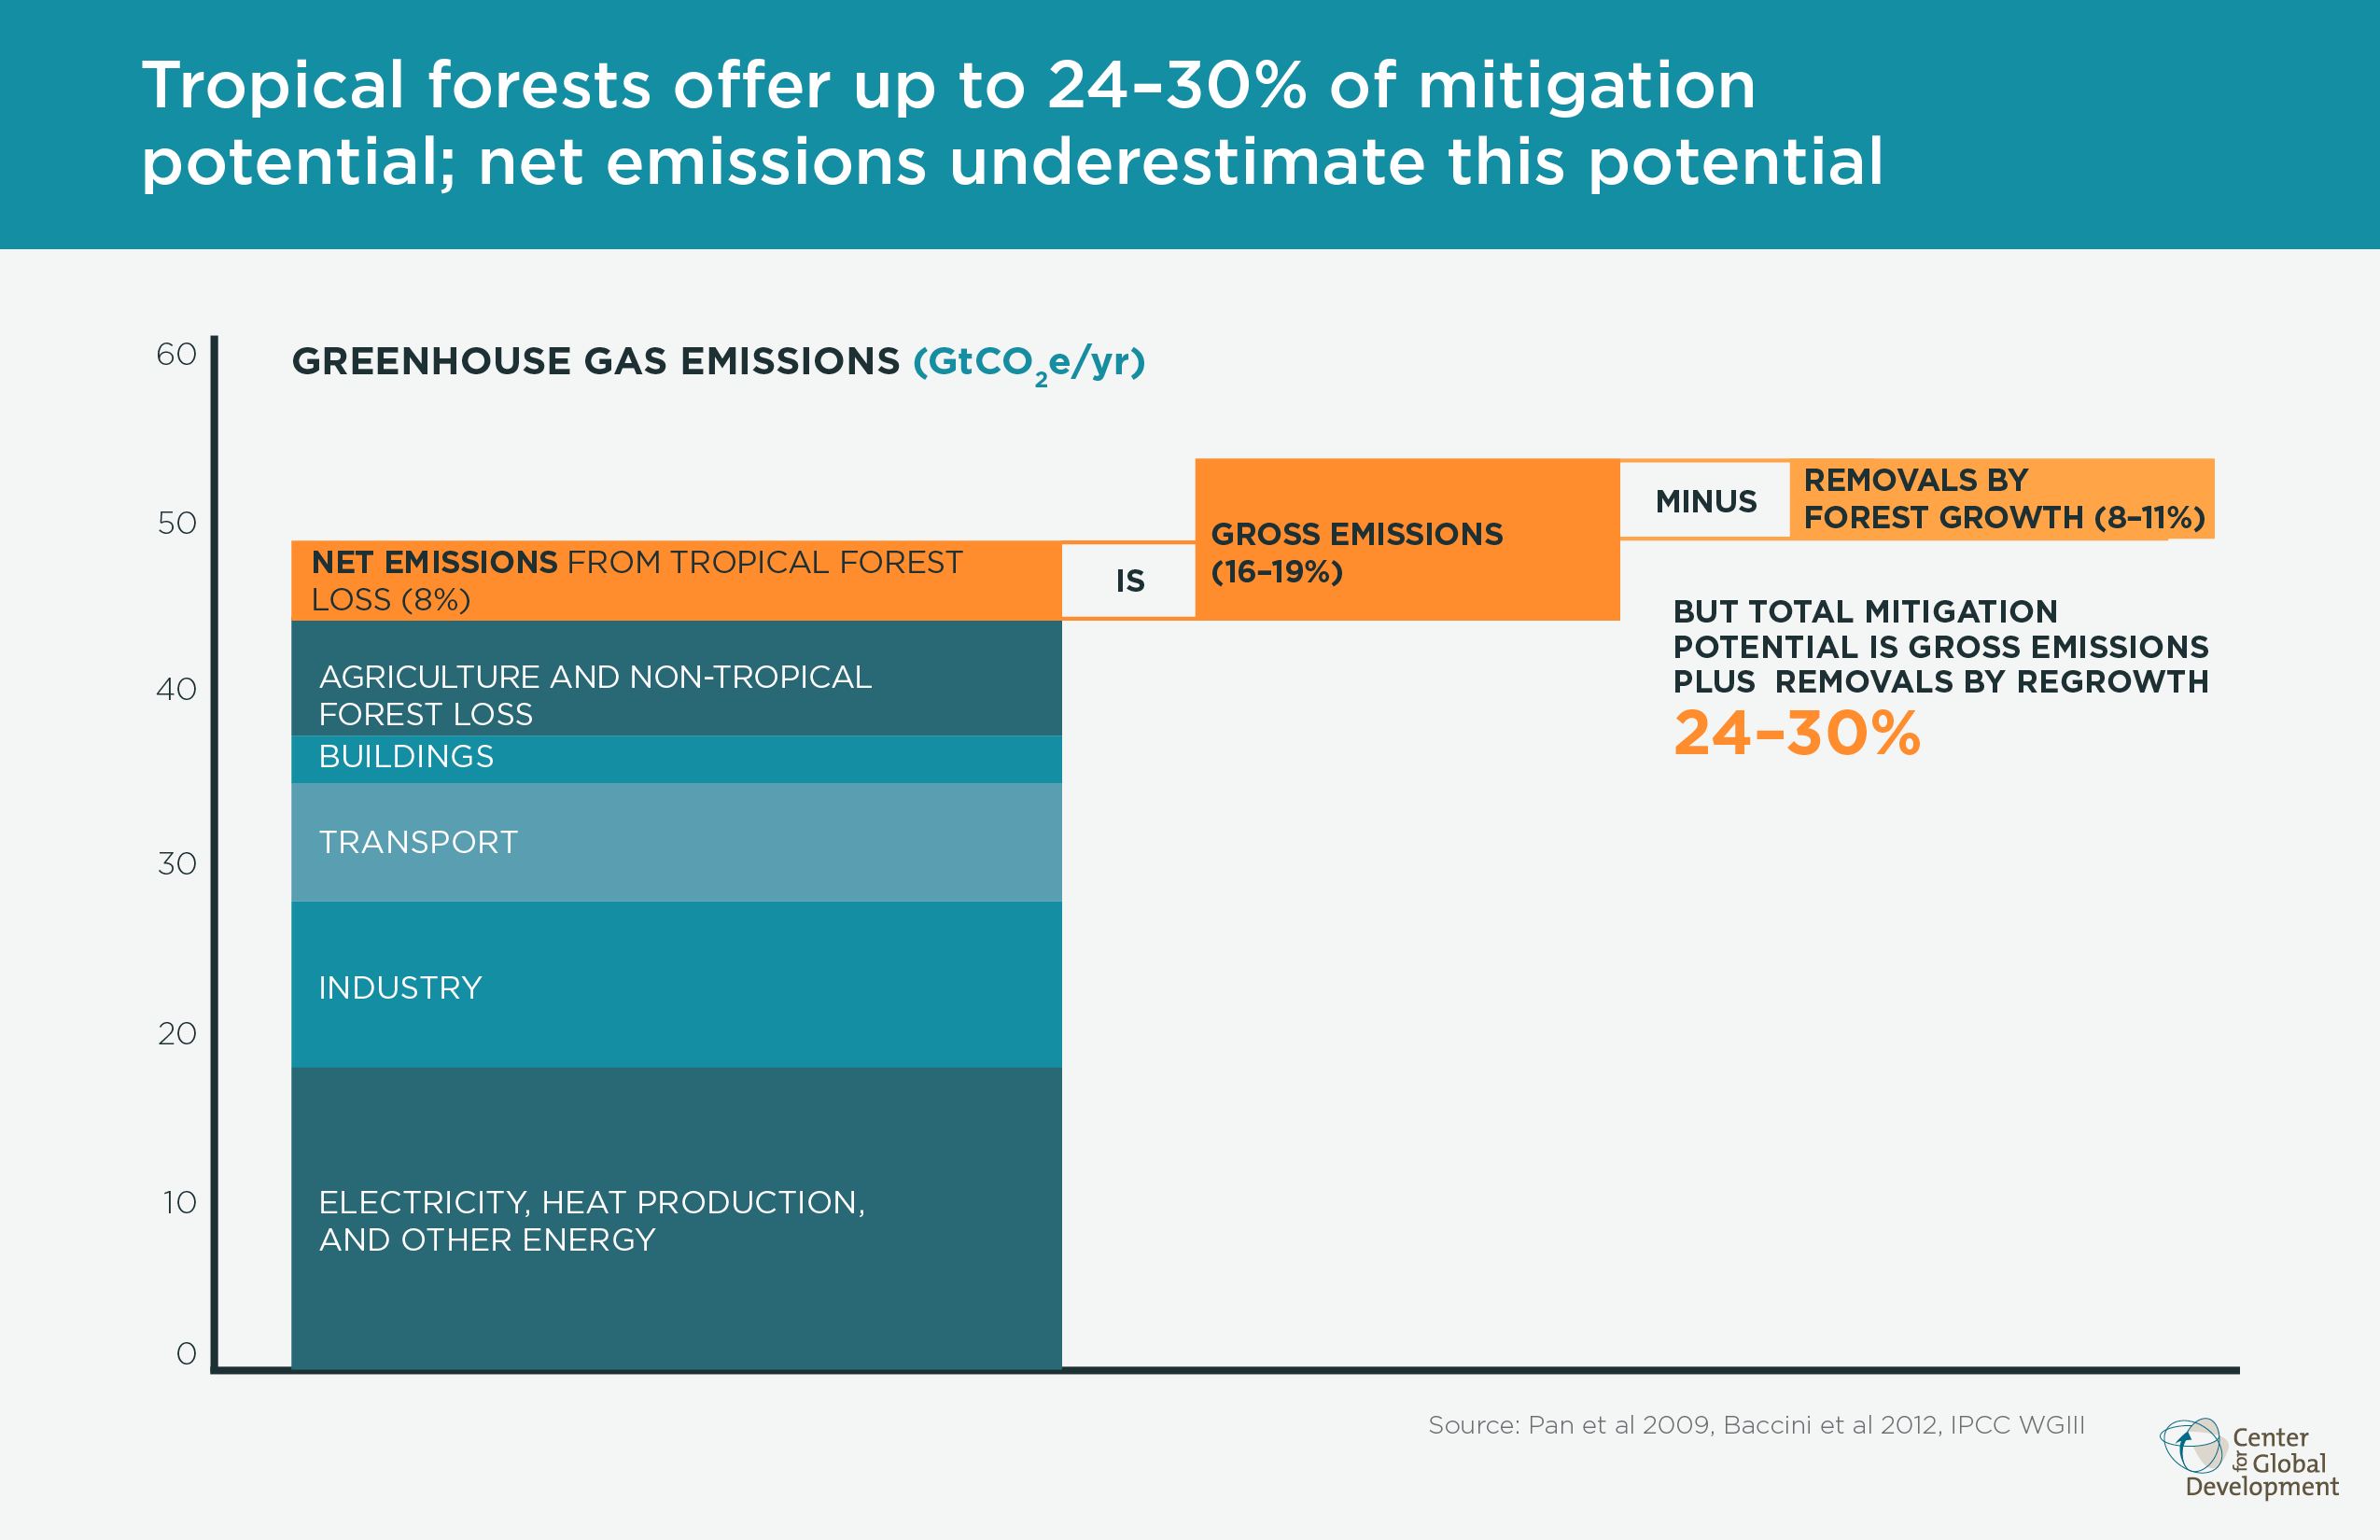 Tropical forest mitigation potential